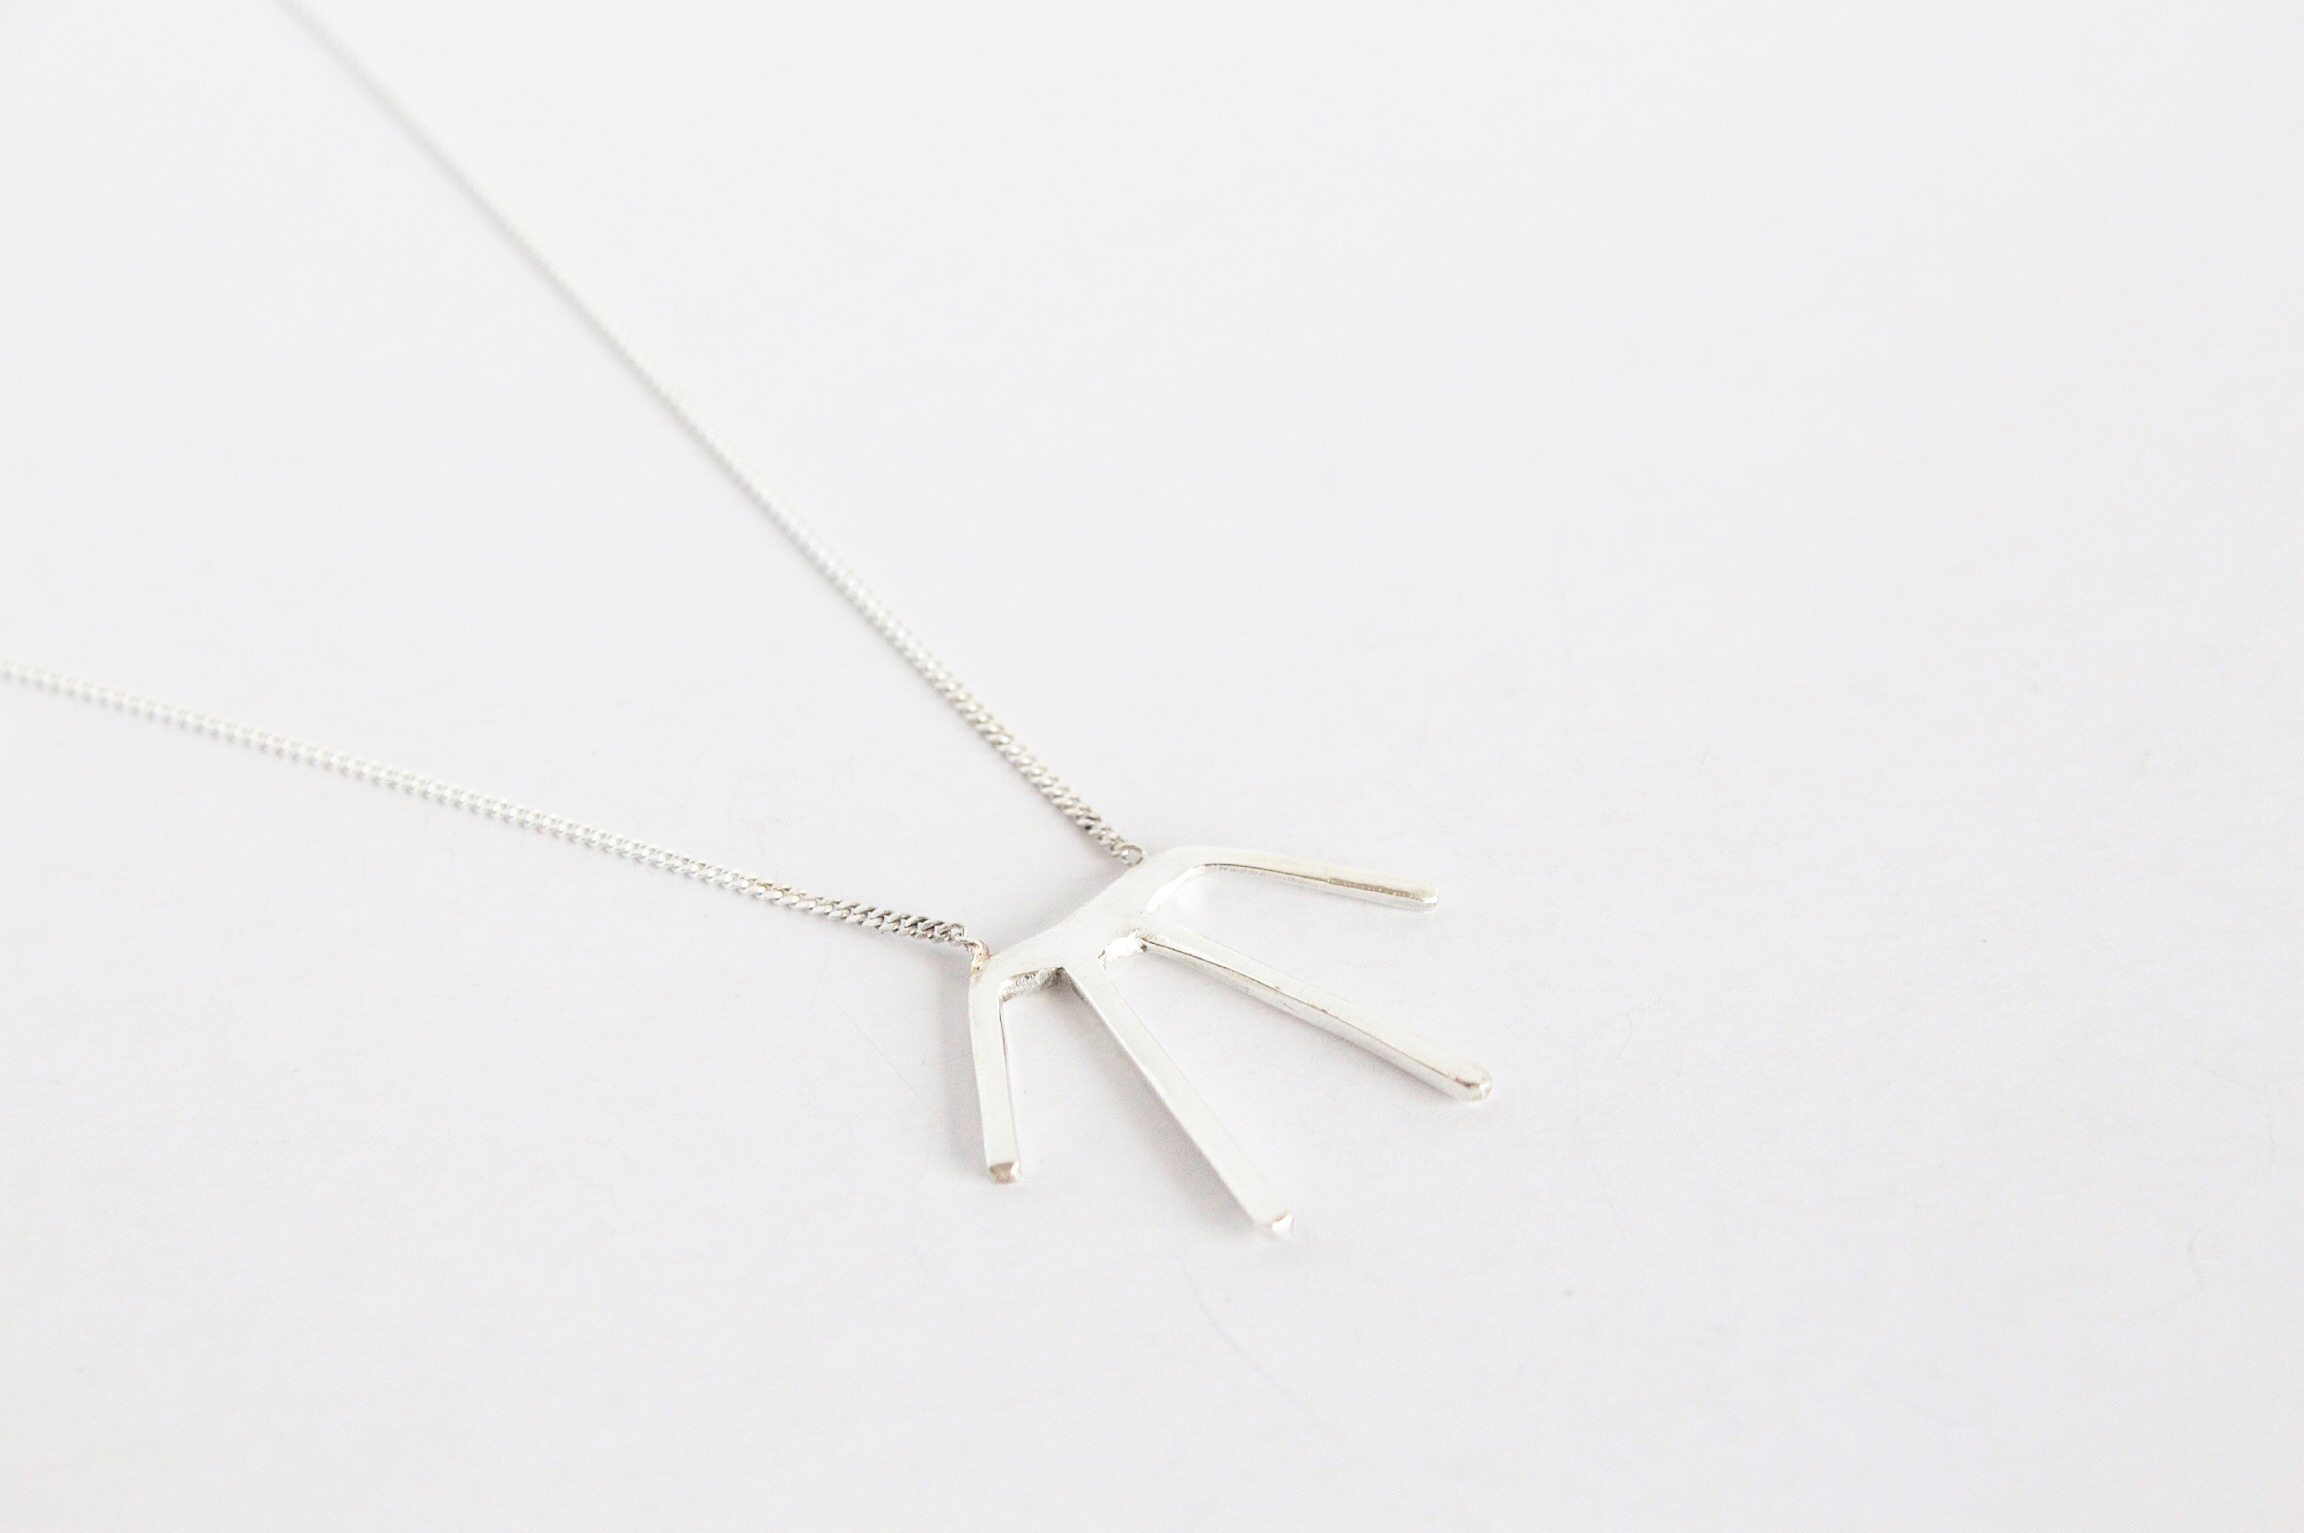 A simple necklace made with solid .925 sterling silver. 